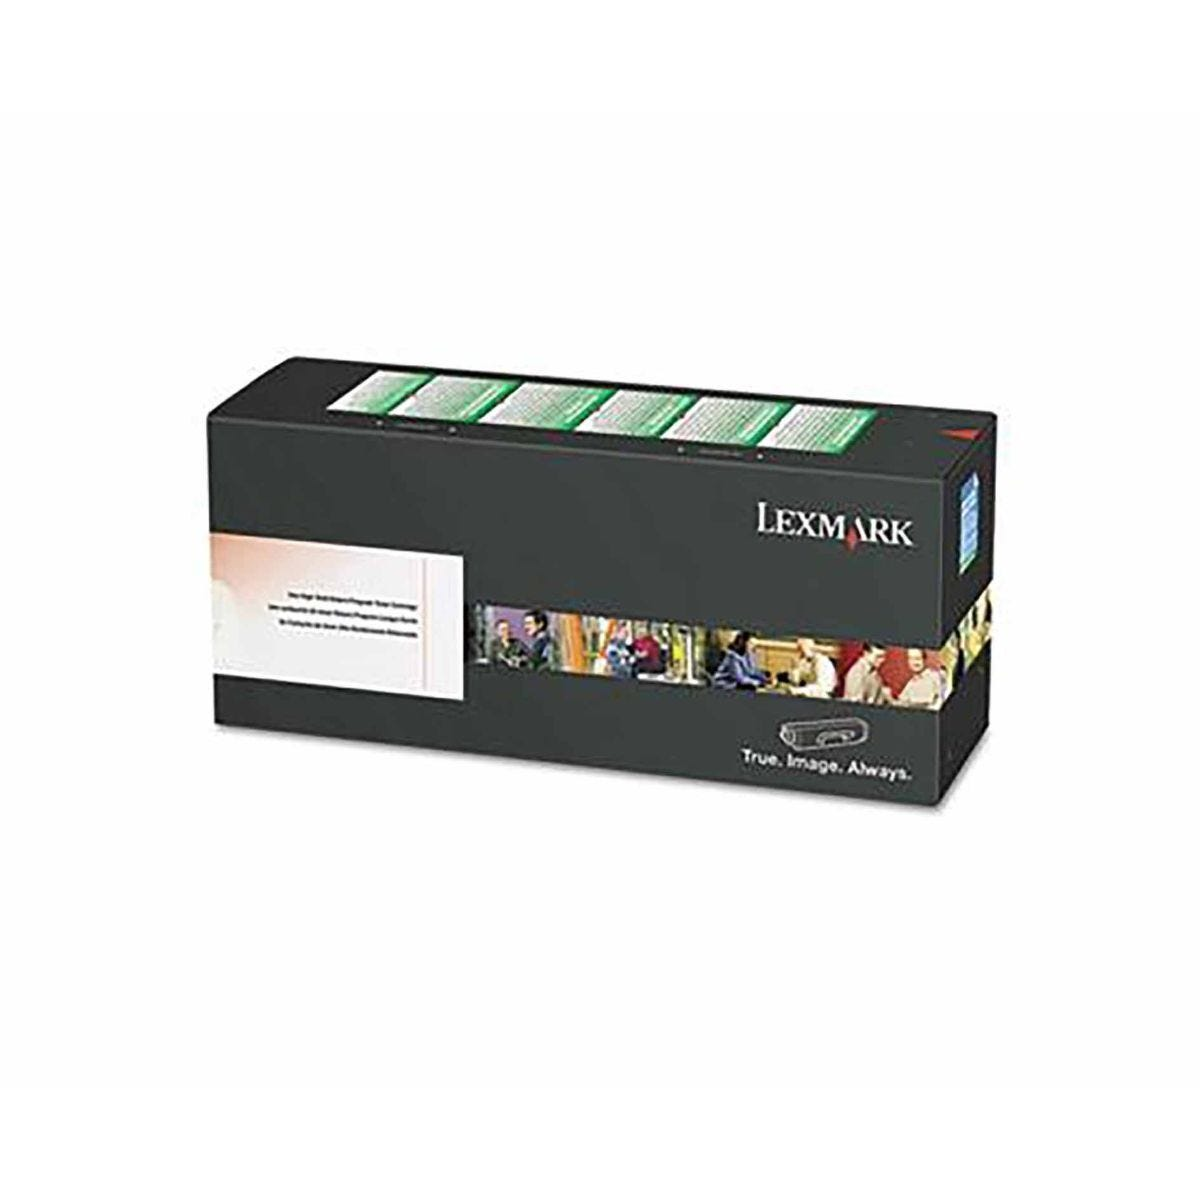 Lexmark 74C2HK0 High Yield Black Original Toner Cartridge